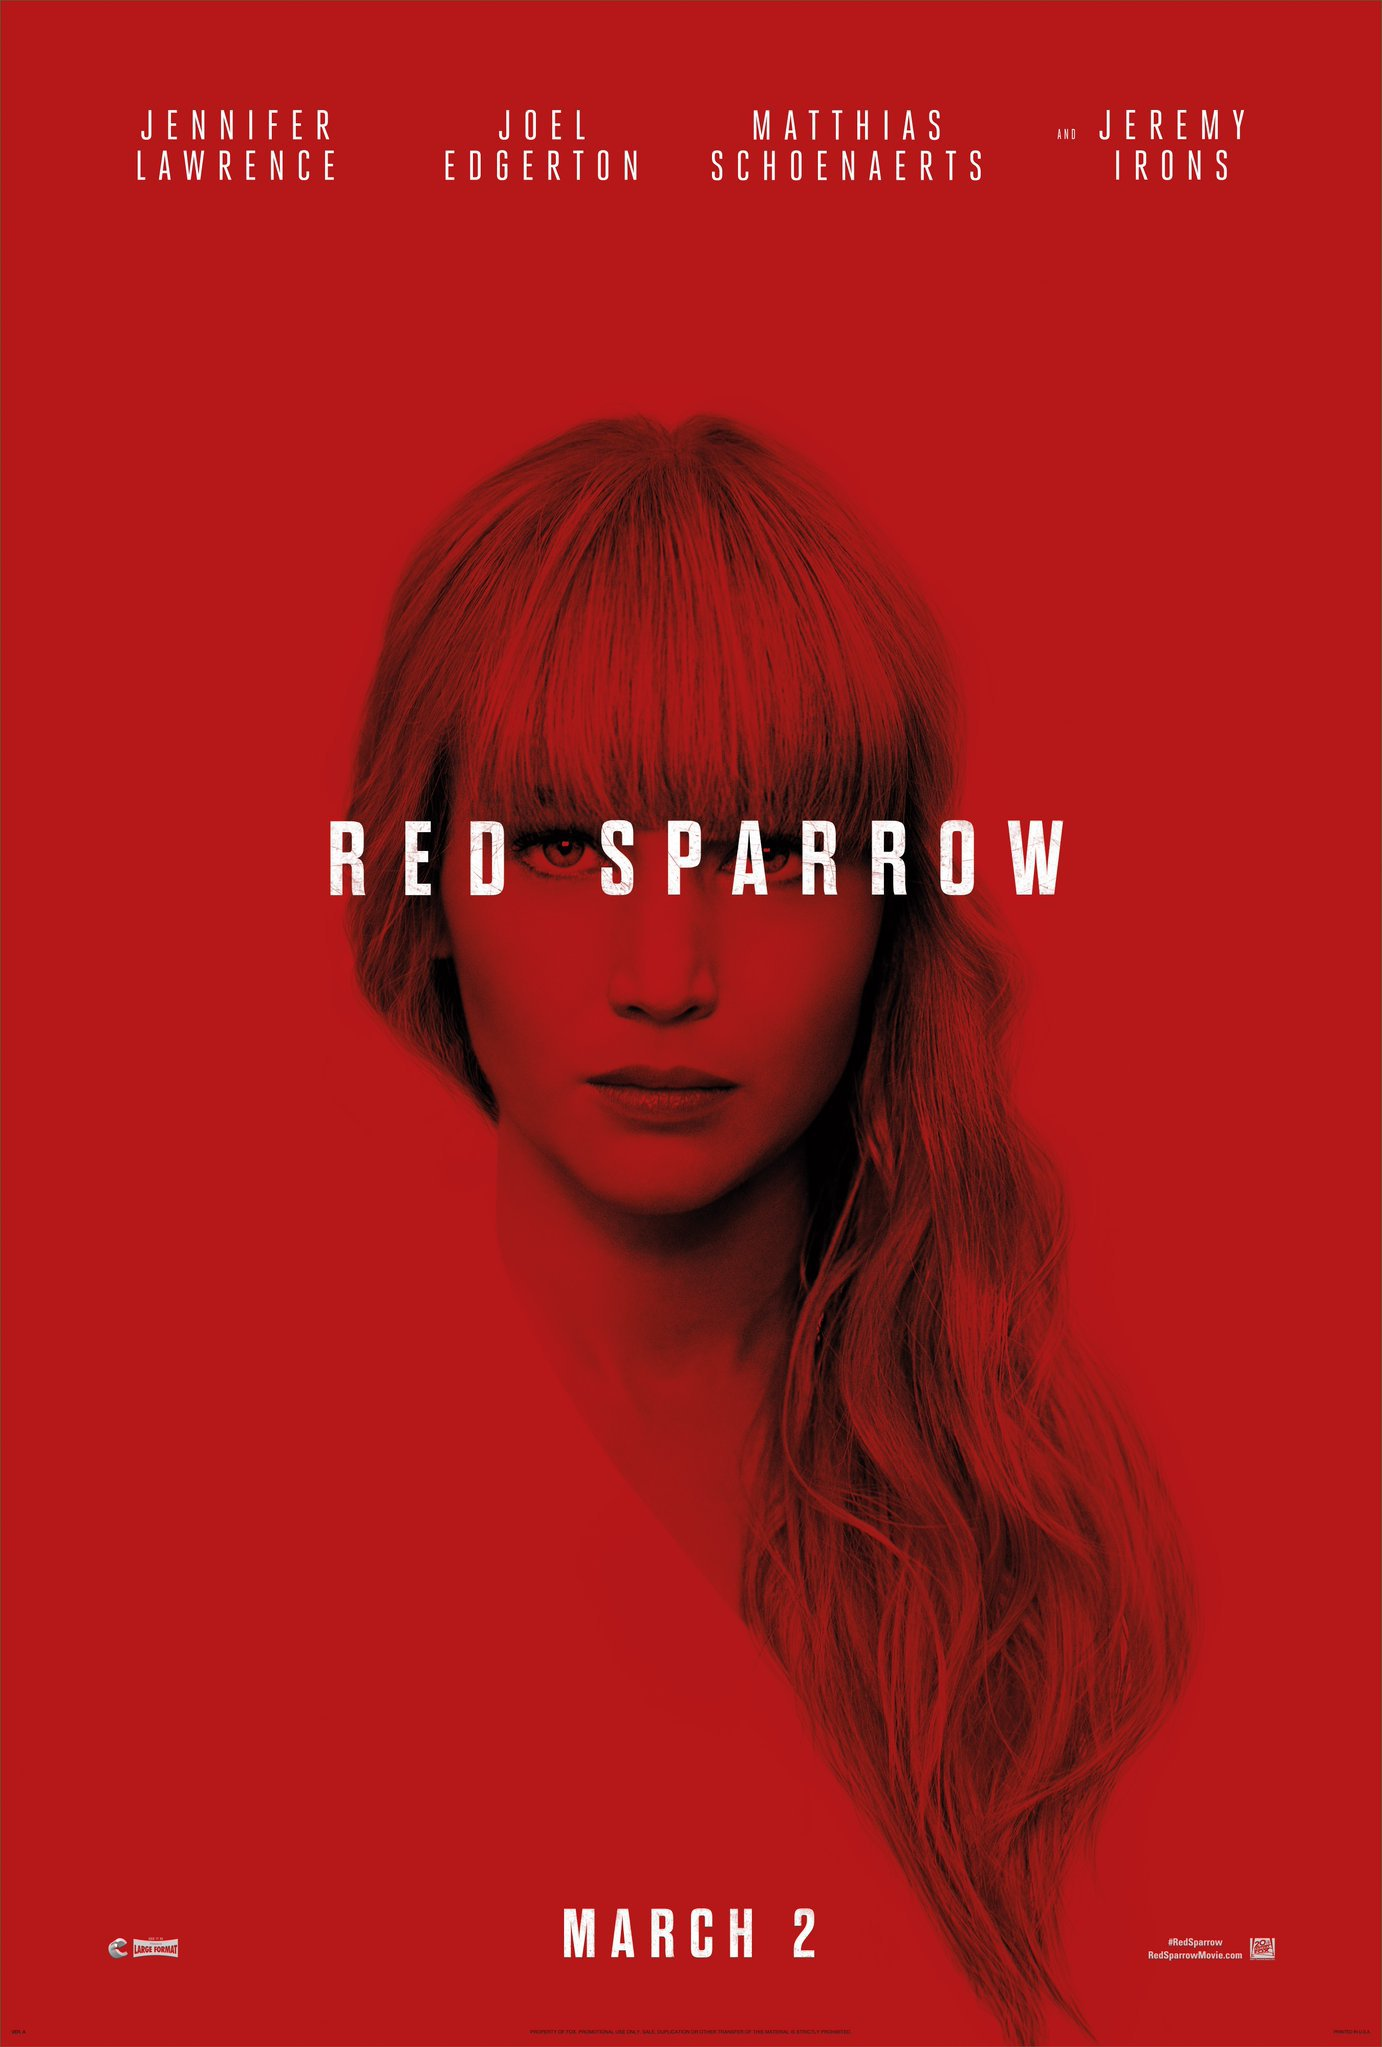 Red-Sparrow-movie-poster